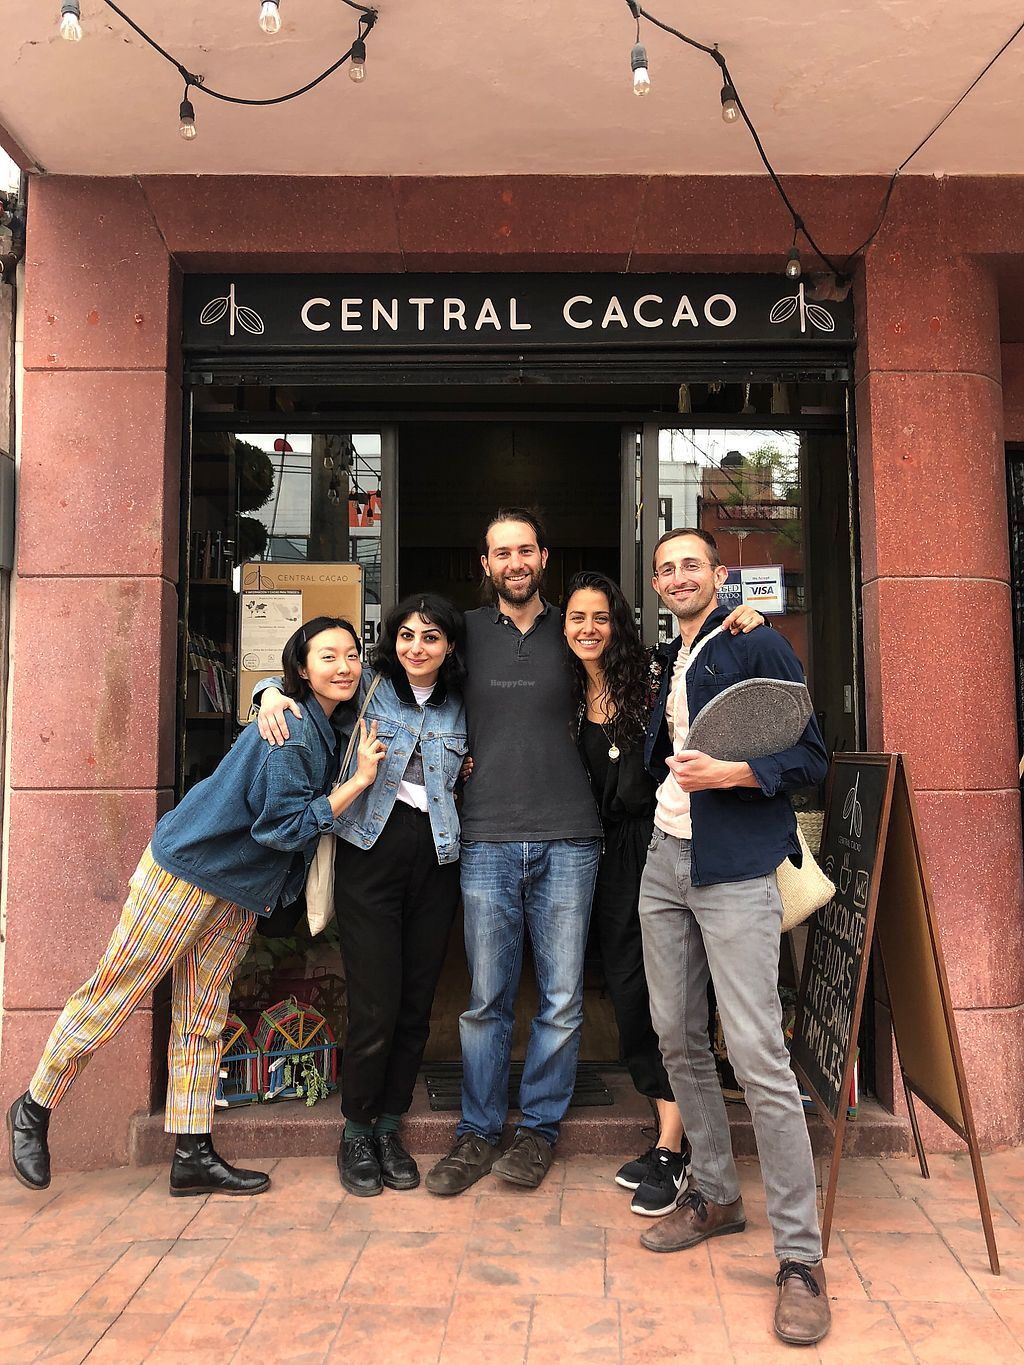 """Photo of Central Cacao  by <a href=""""/members/profile/FioMigliore"""" class=""""title__title"""">FioMigliore</a> <br/>Perfecto place for a friends moment ❤️. The atmosphere is welcoming and warm  <br/> February 18, 2018  - <a href='/contact/abuse/image/111627/360942'>Report</a>"""